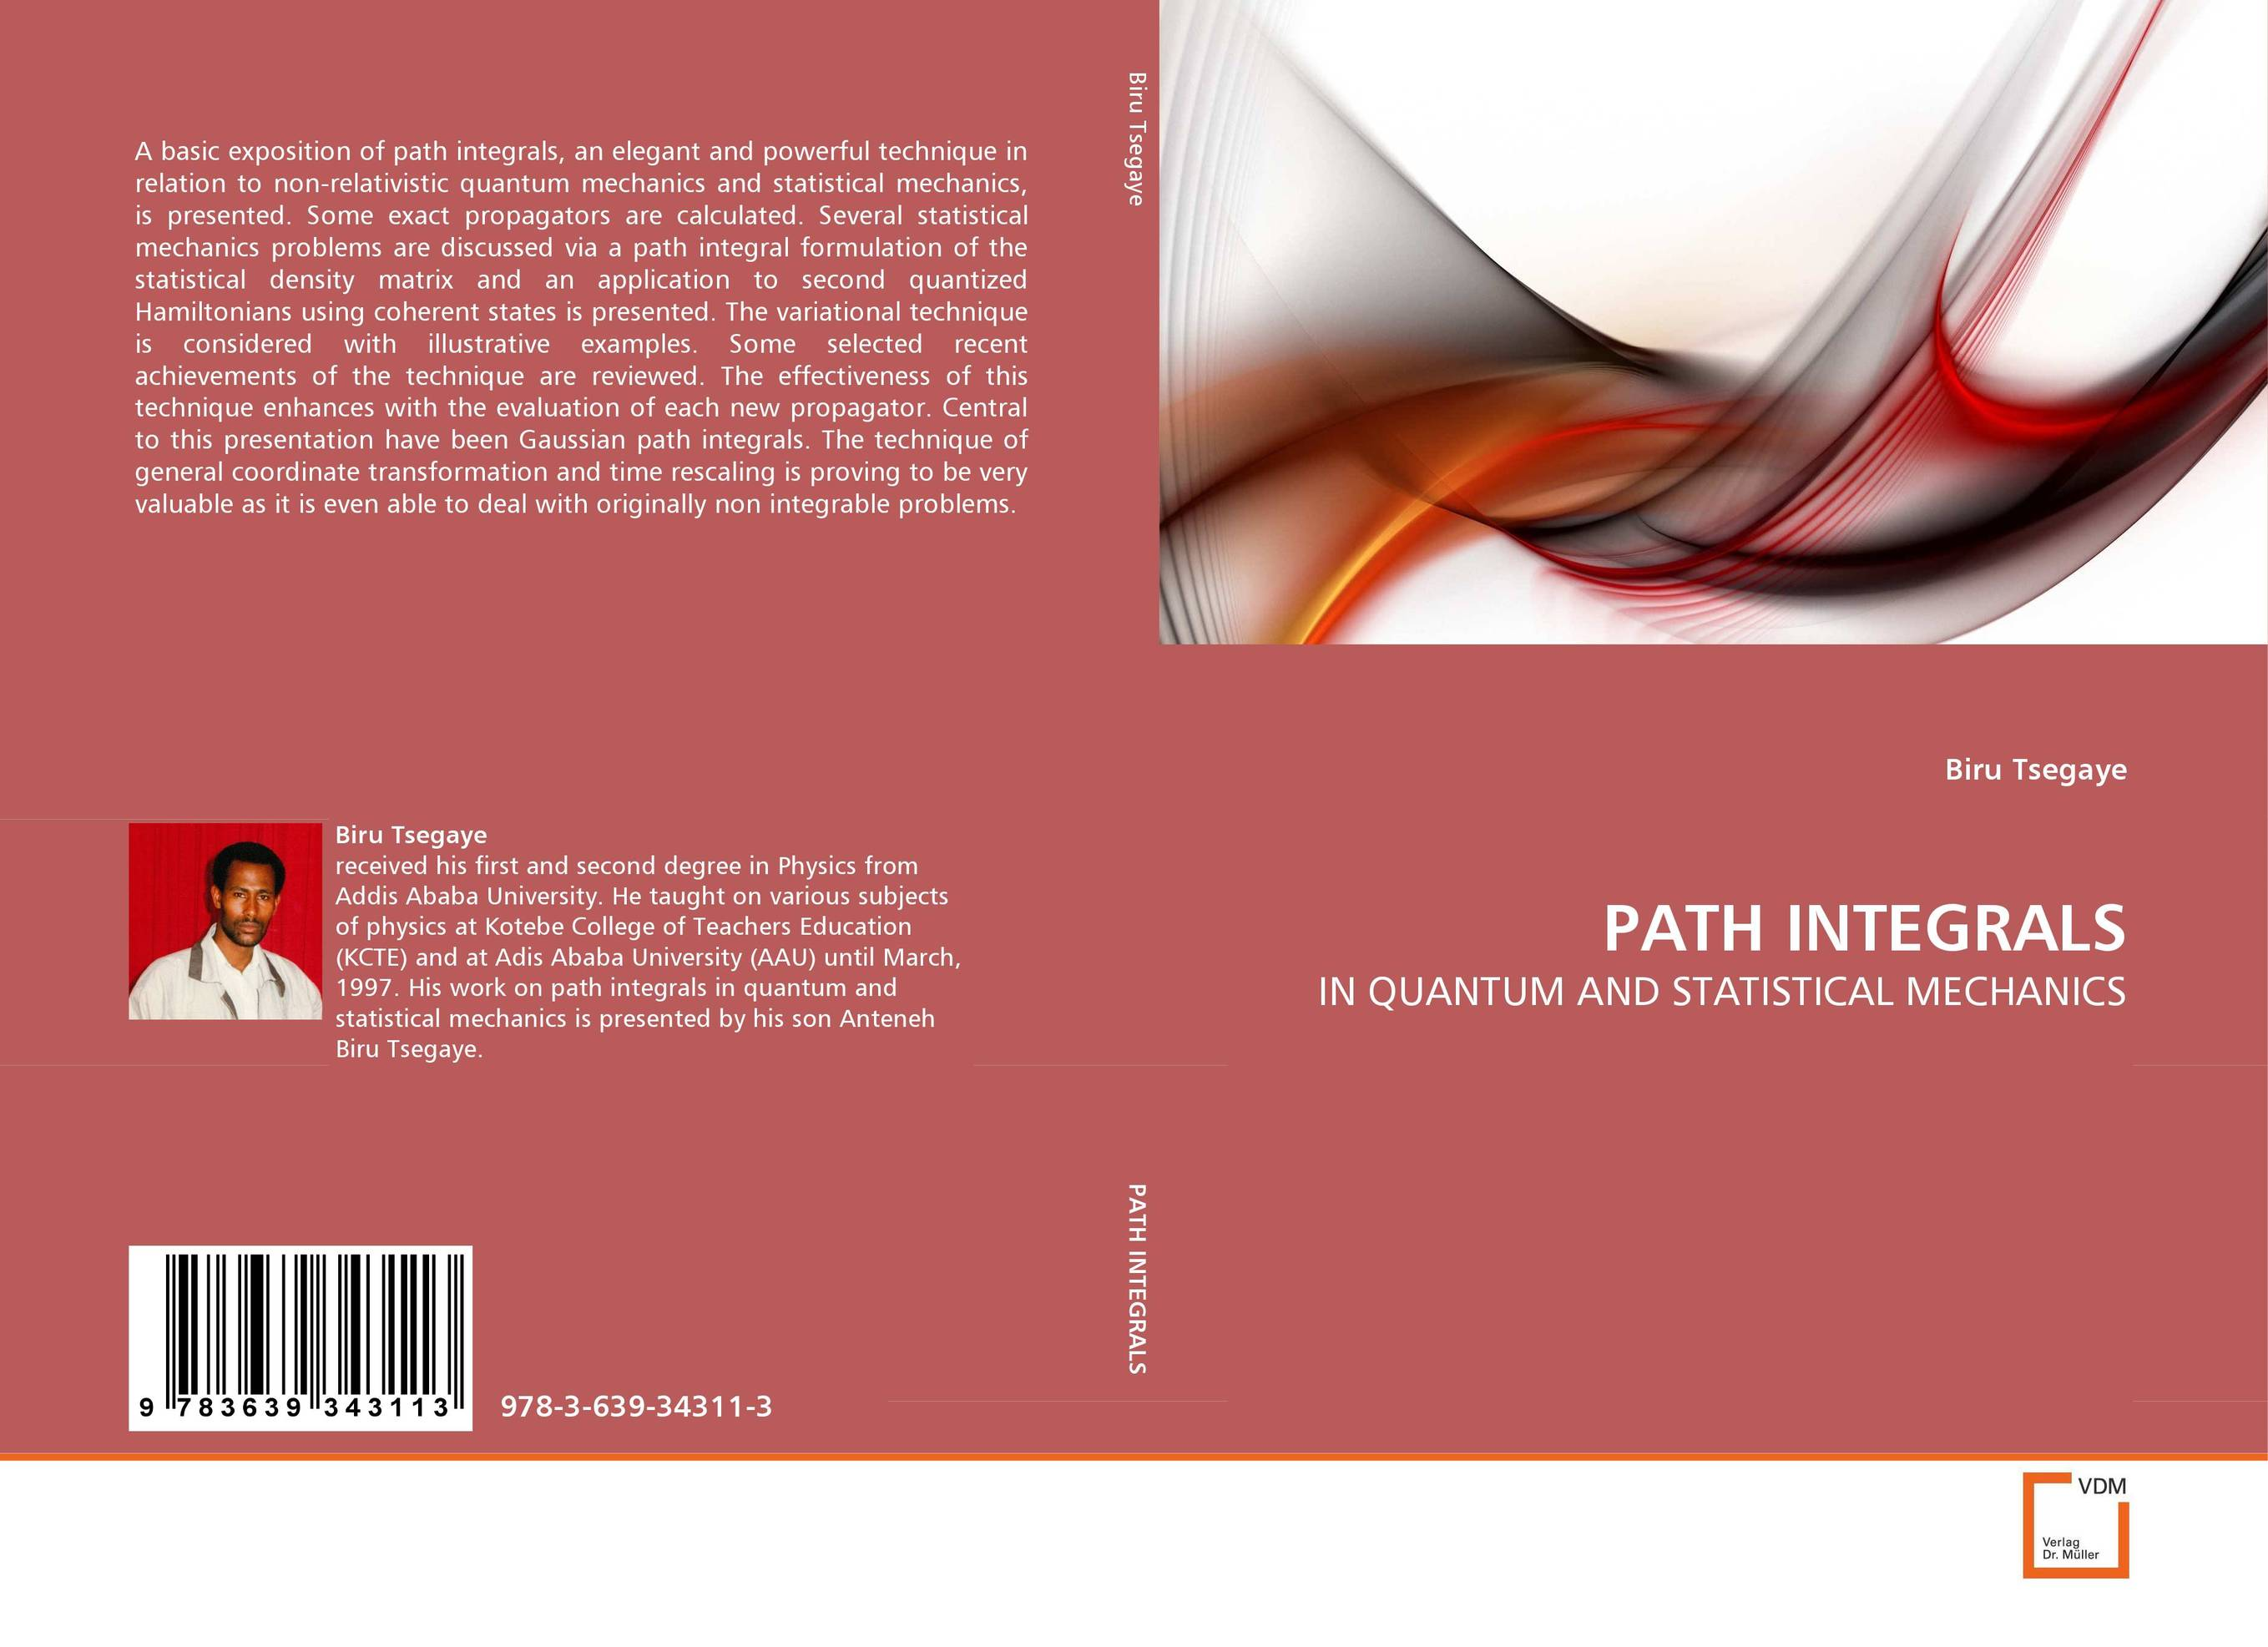 PATH INTEGRALS anatoly peresetsky do secrets come out statistical evaluation of student cheating